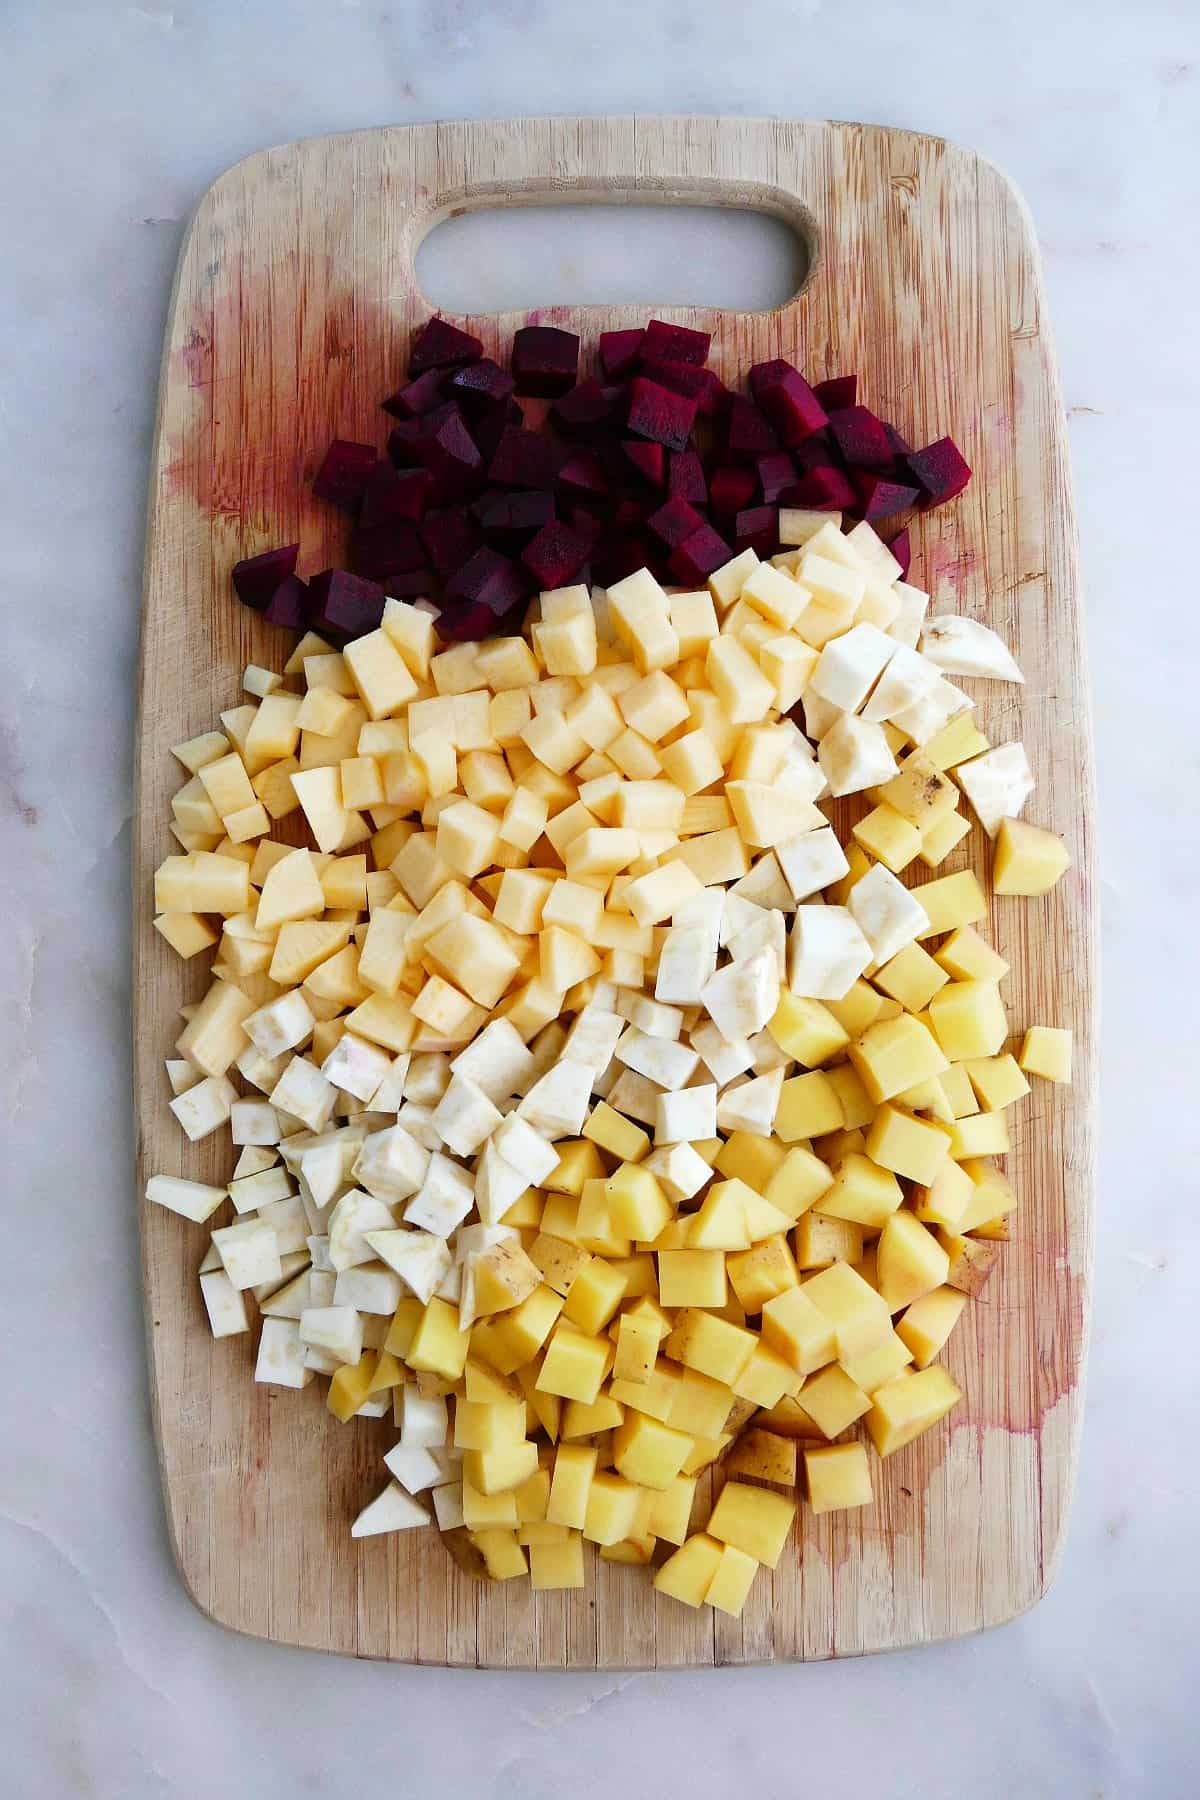 diced root vegetables spread out on a bamboo cutting board on a counter